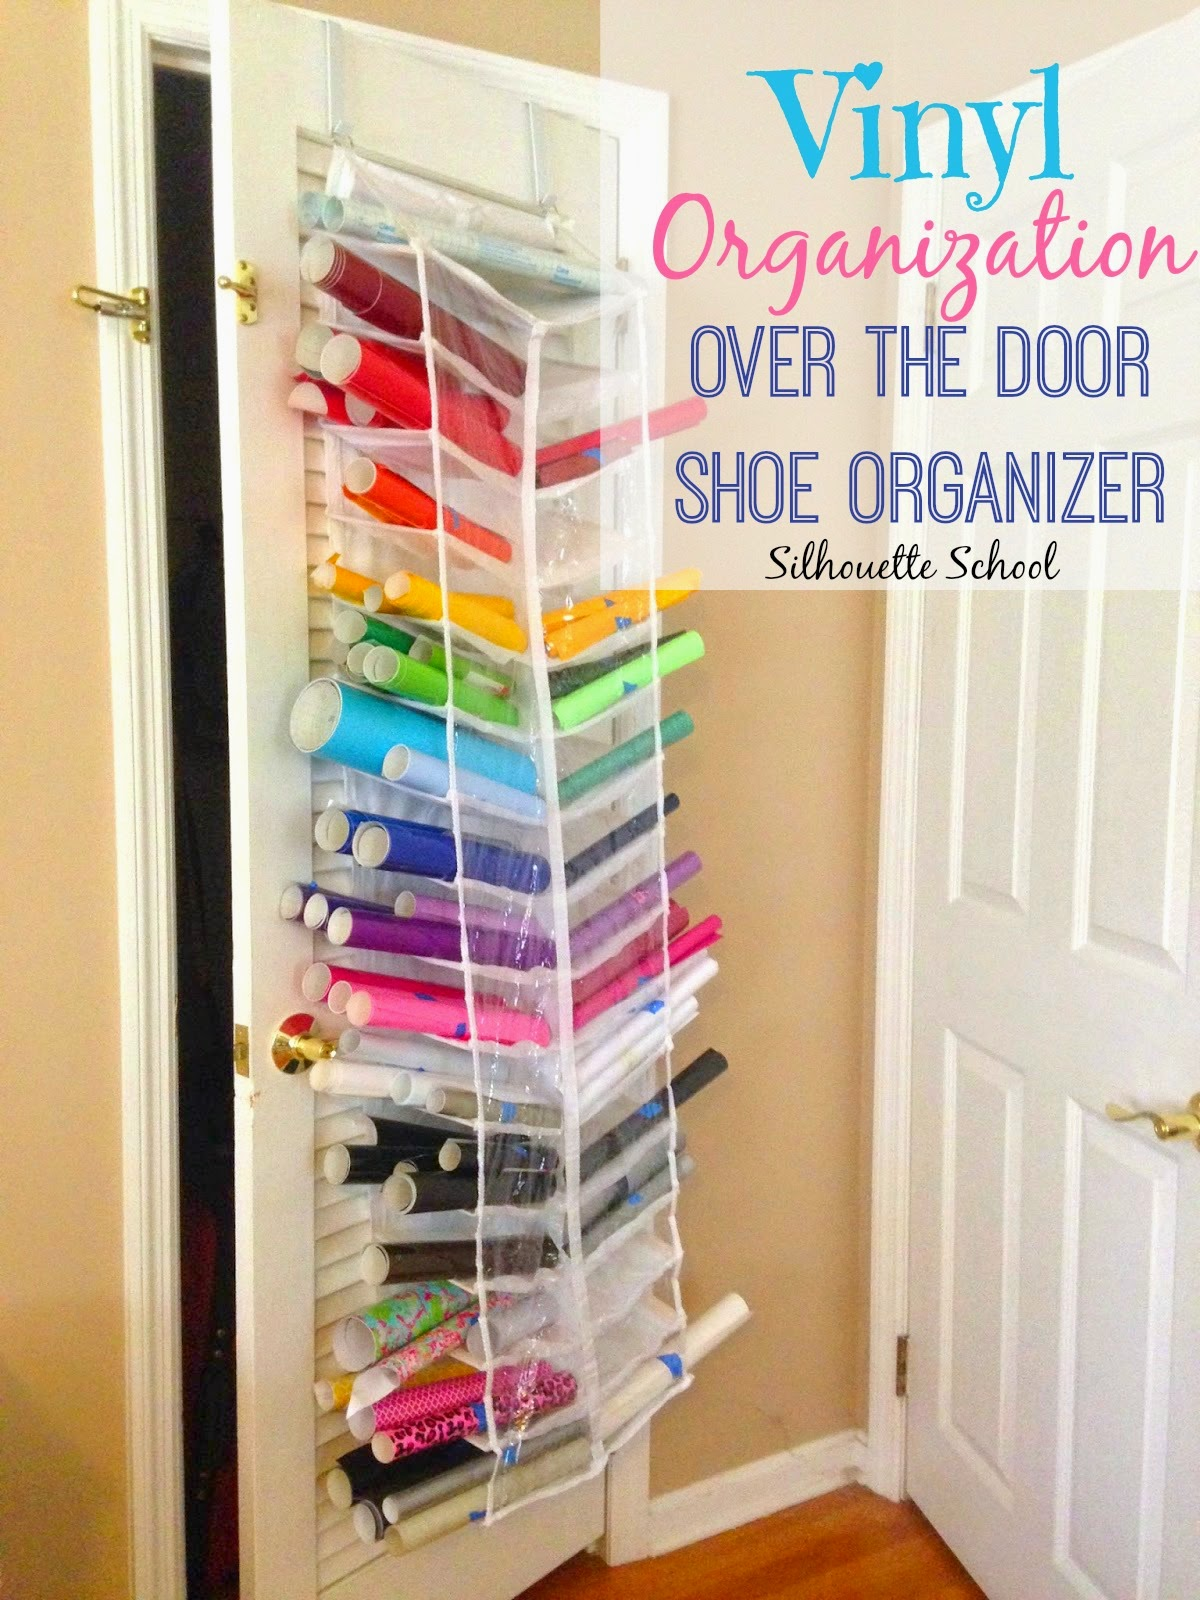 Htv And Vinyl Storage In An Over The Door Shoe Organizer Bigger And Better Silhouette School